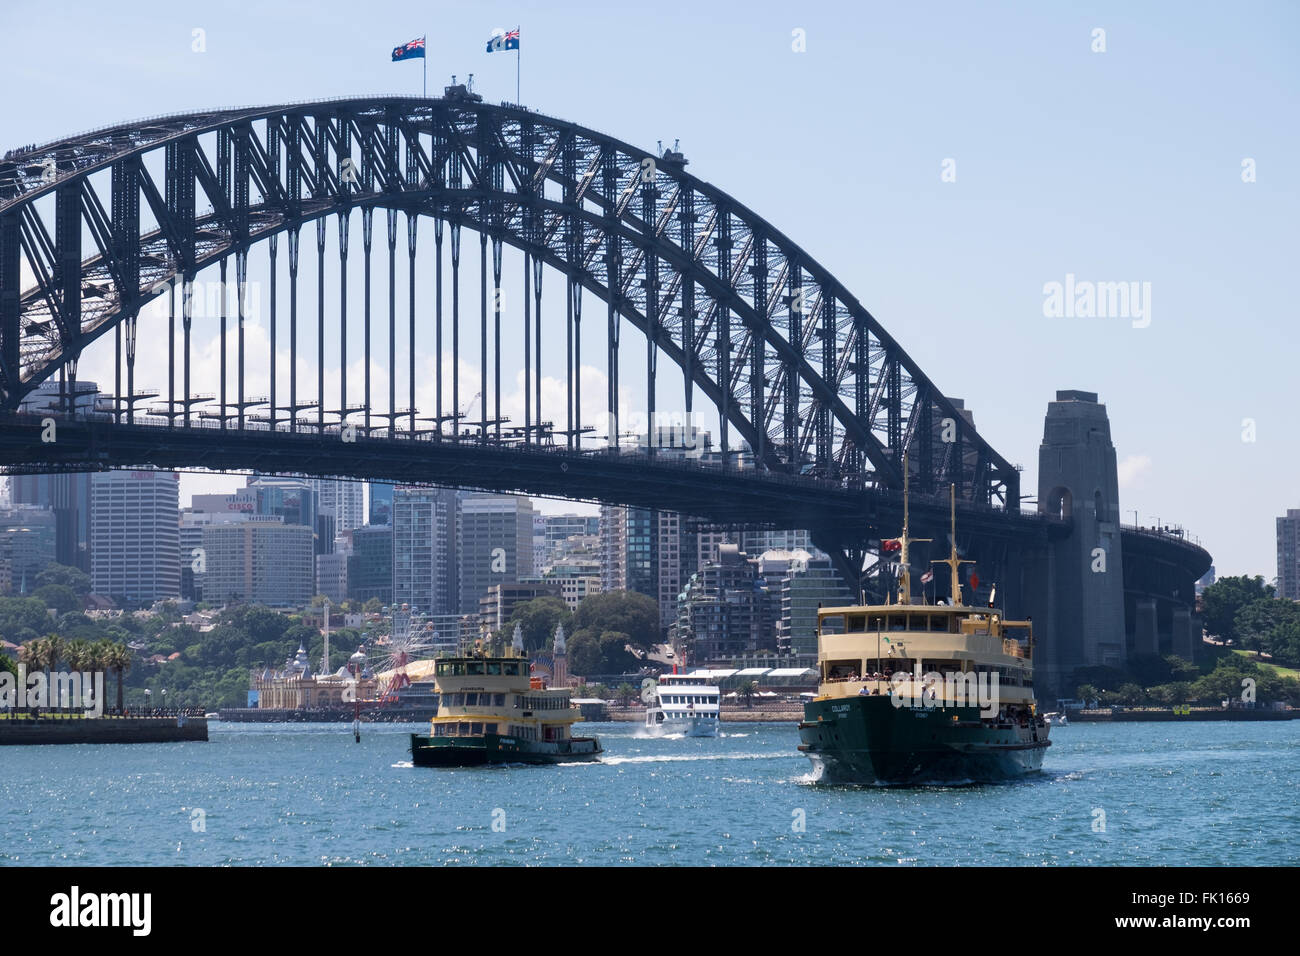 Sydney Harbour Ferries Fishburn (left) and Collaroy (right) returning into Sydney Cove, with the Sydney Harbour - Stock Image